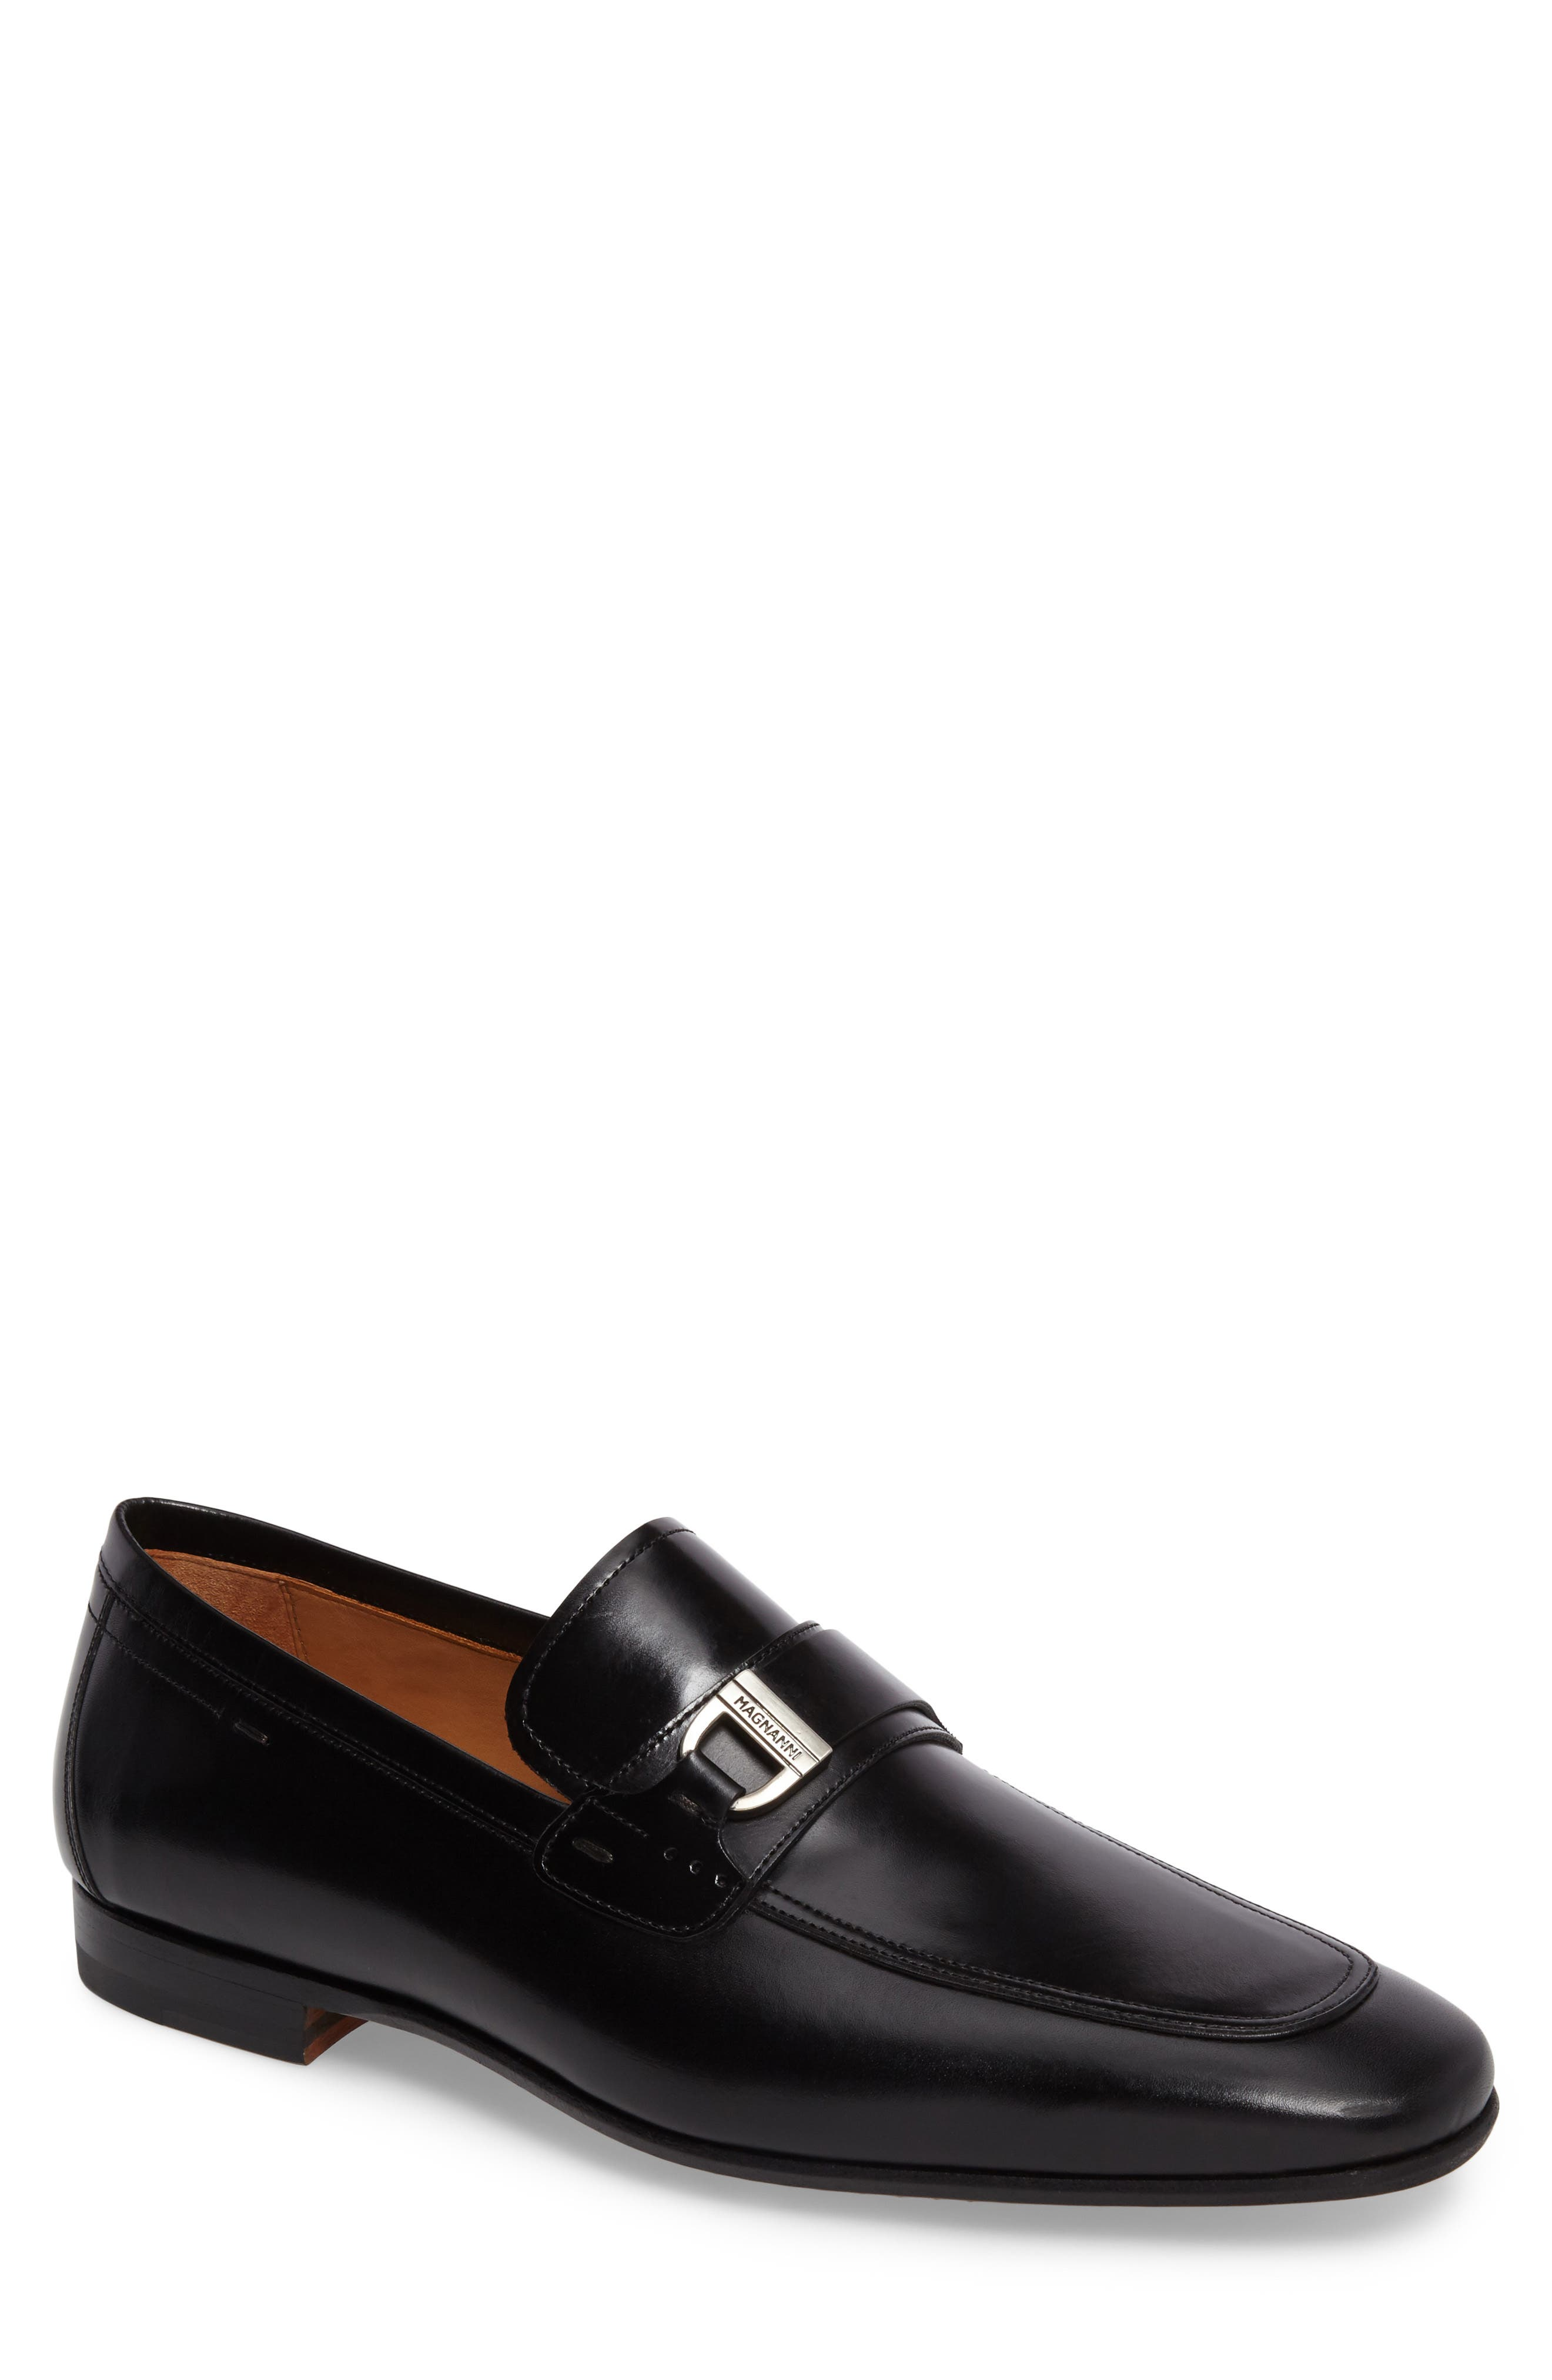 Rico Bit Venetian Loafer,                             Main thumbnail 1, color,                             001